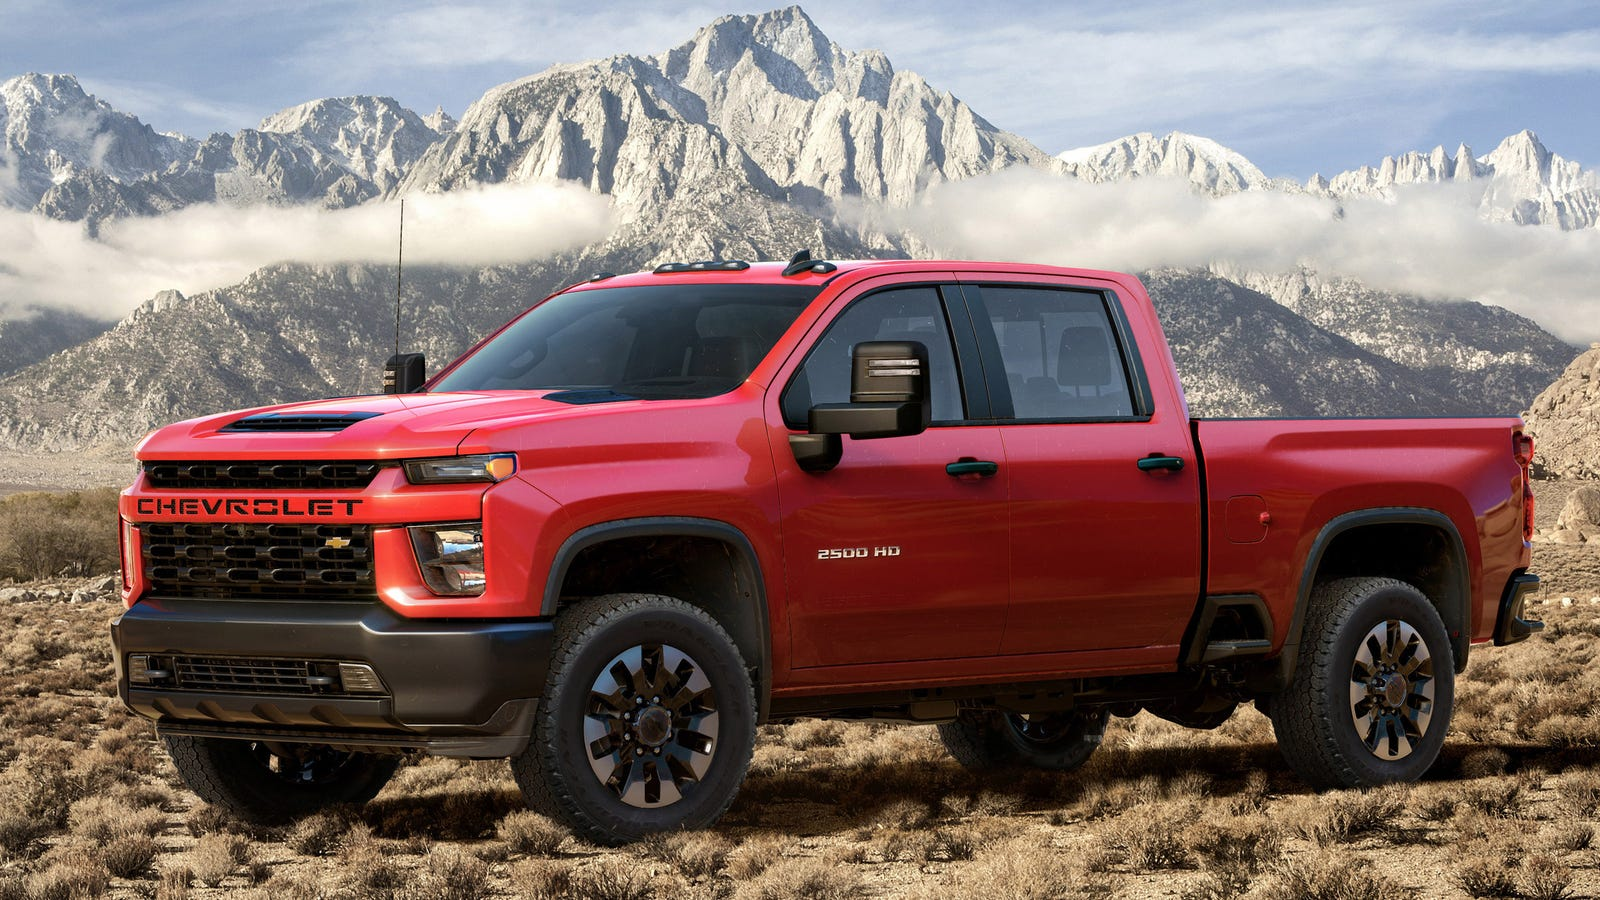 The 2020 Chevrolet Silverado Hd Duramax Diesel Can Tow Up